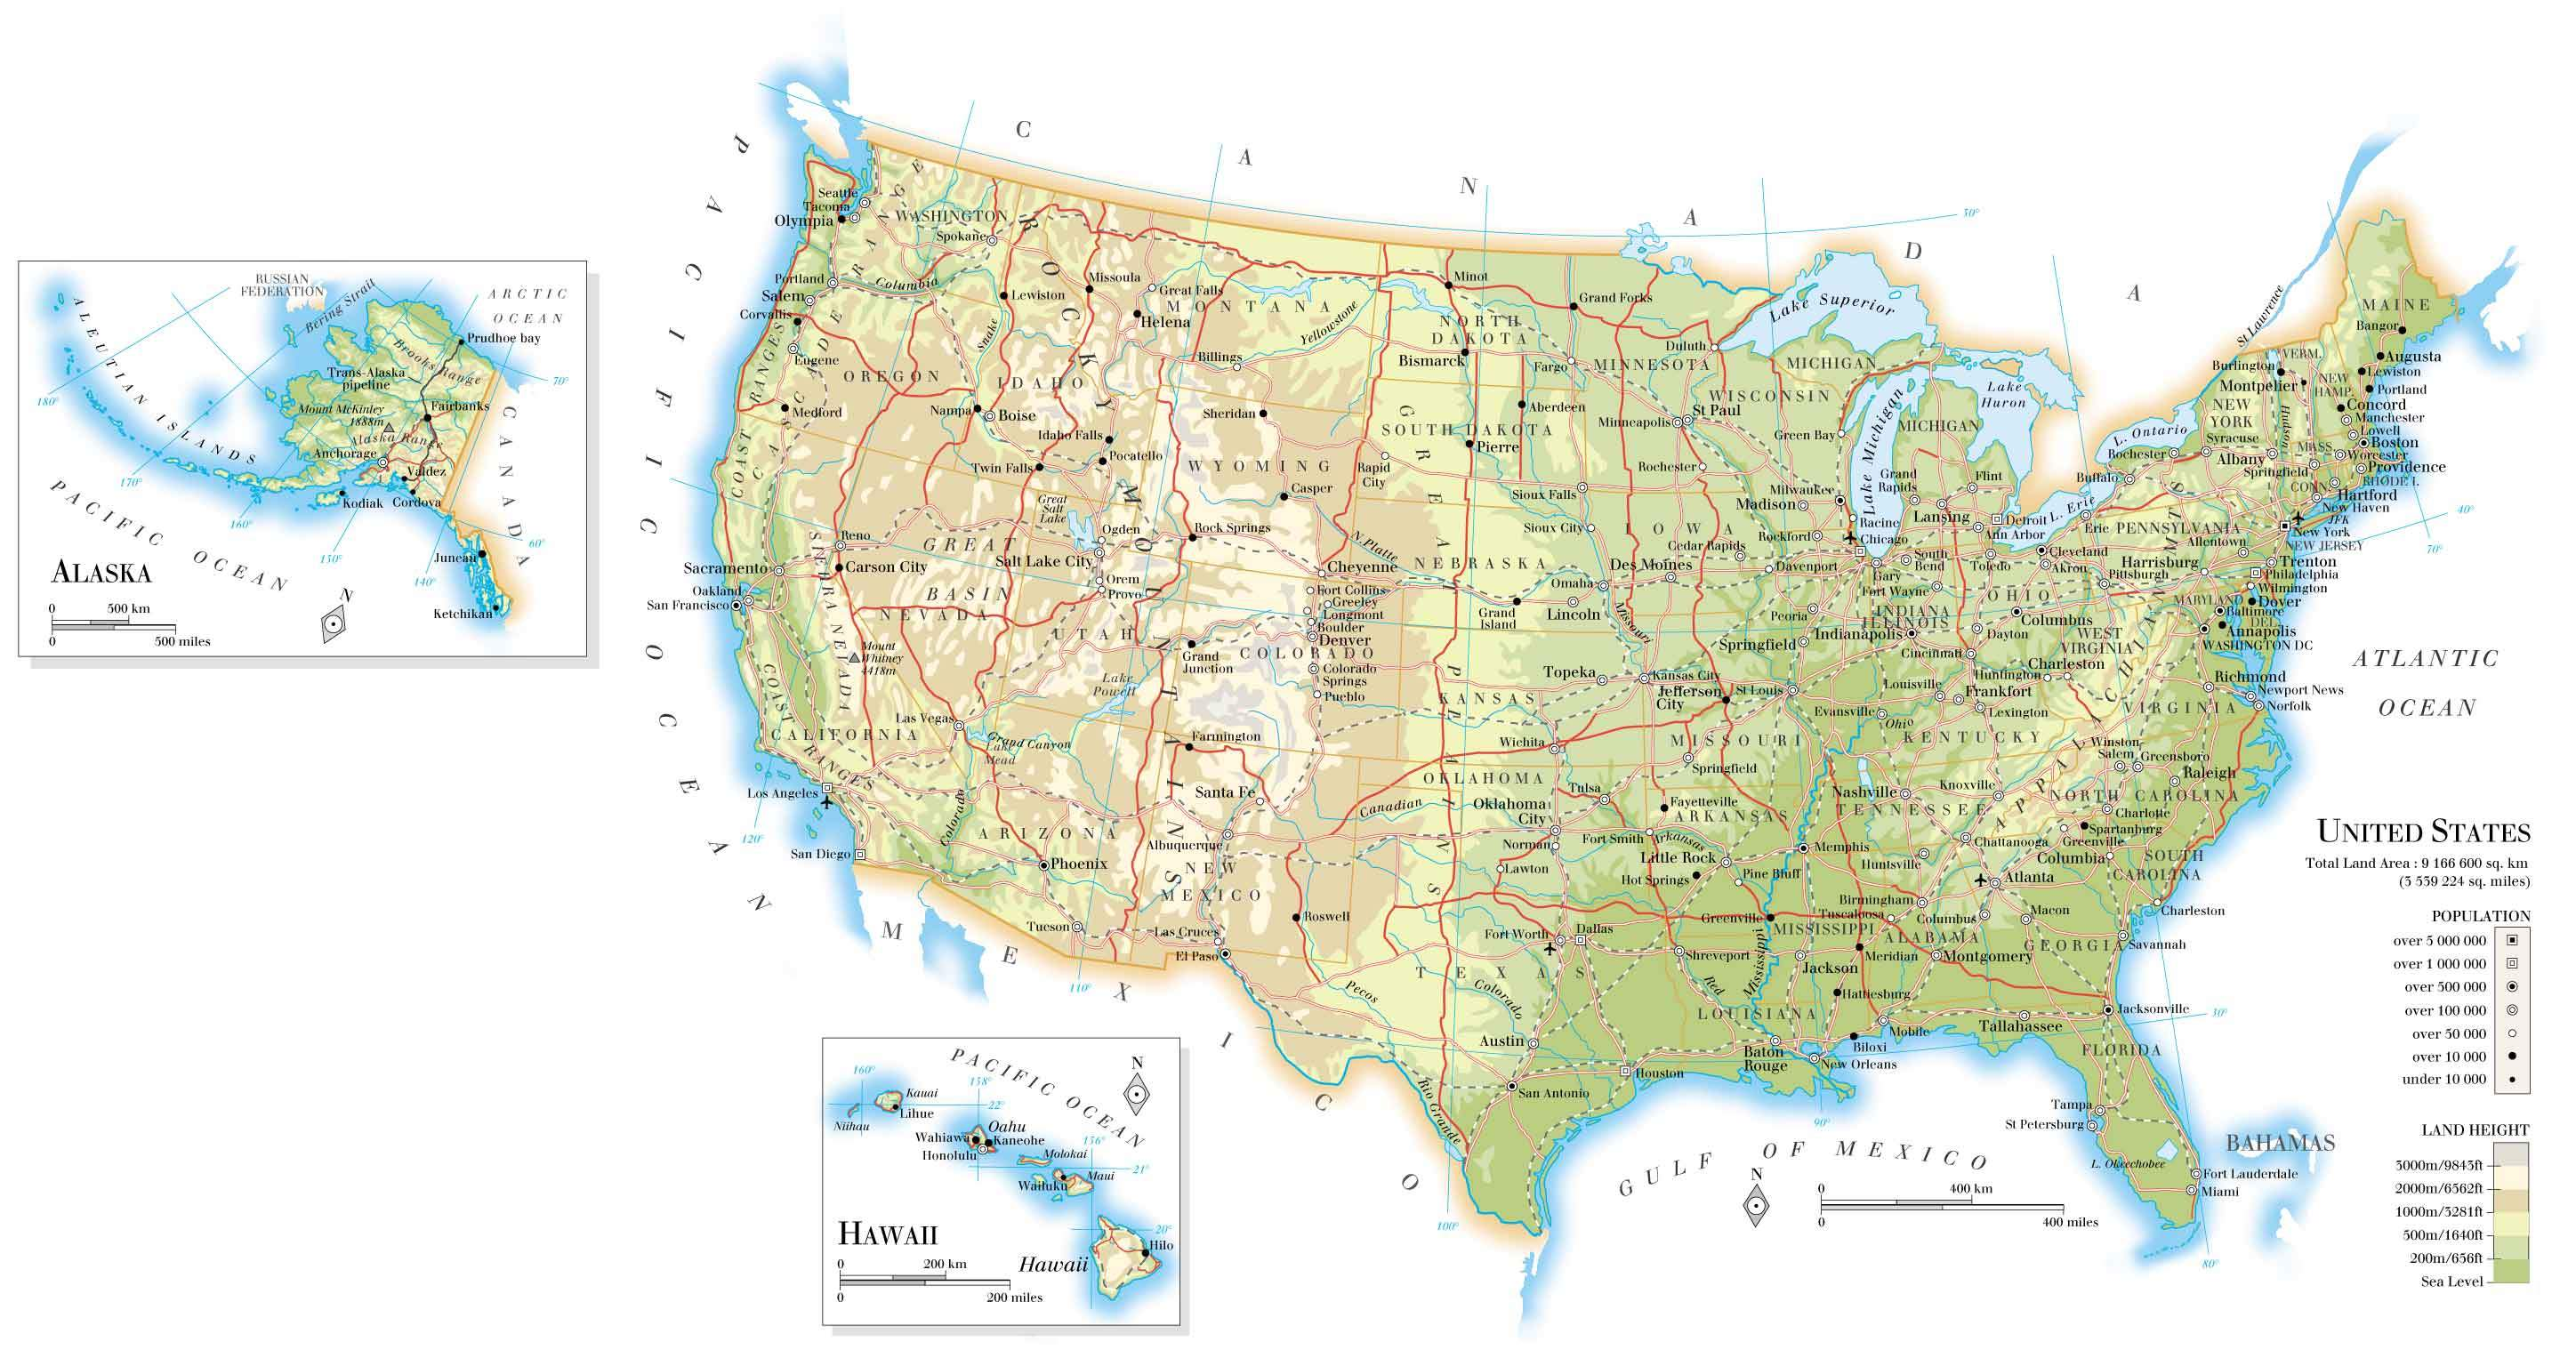 USA Maps Maps Of United States Of America USA US USA Maps - Map of us states and large cities